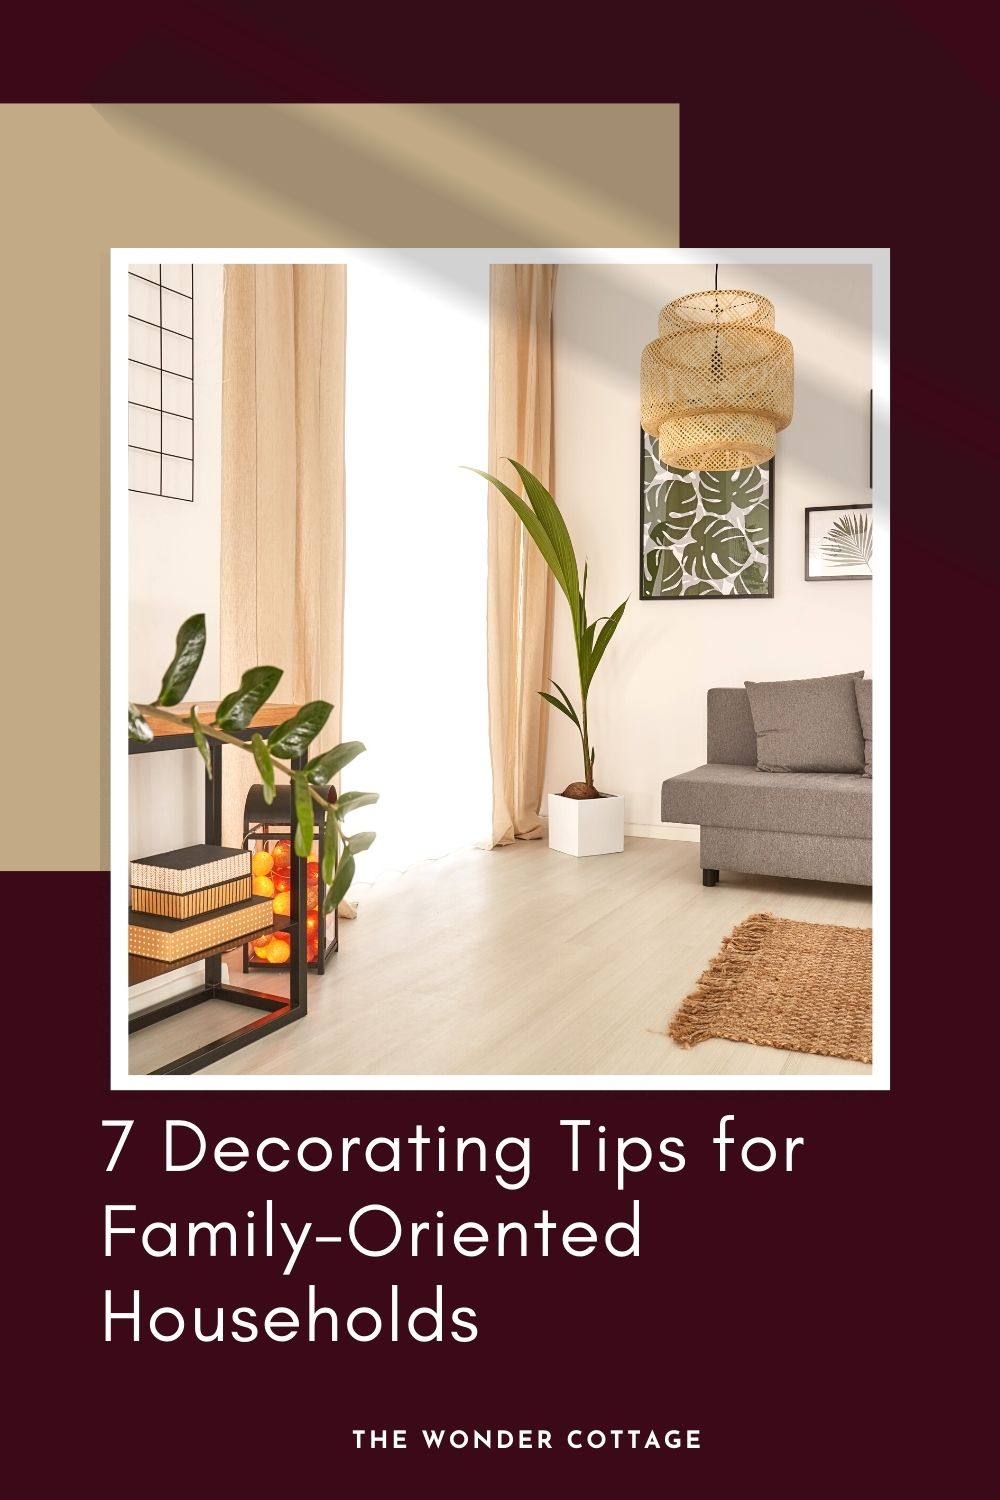 7 decorating tips for family-oriented households